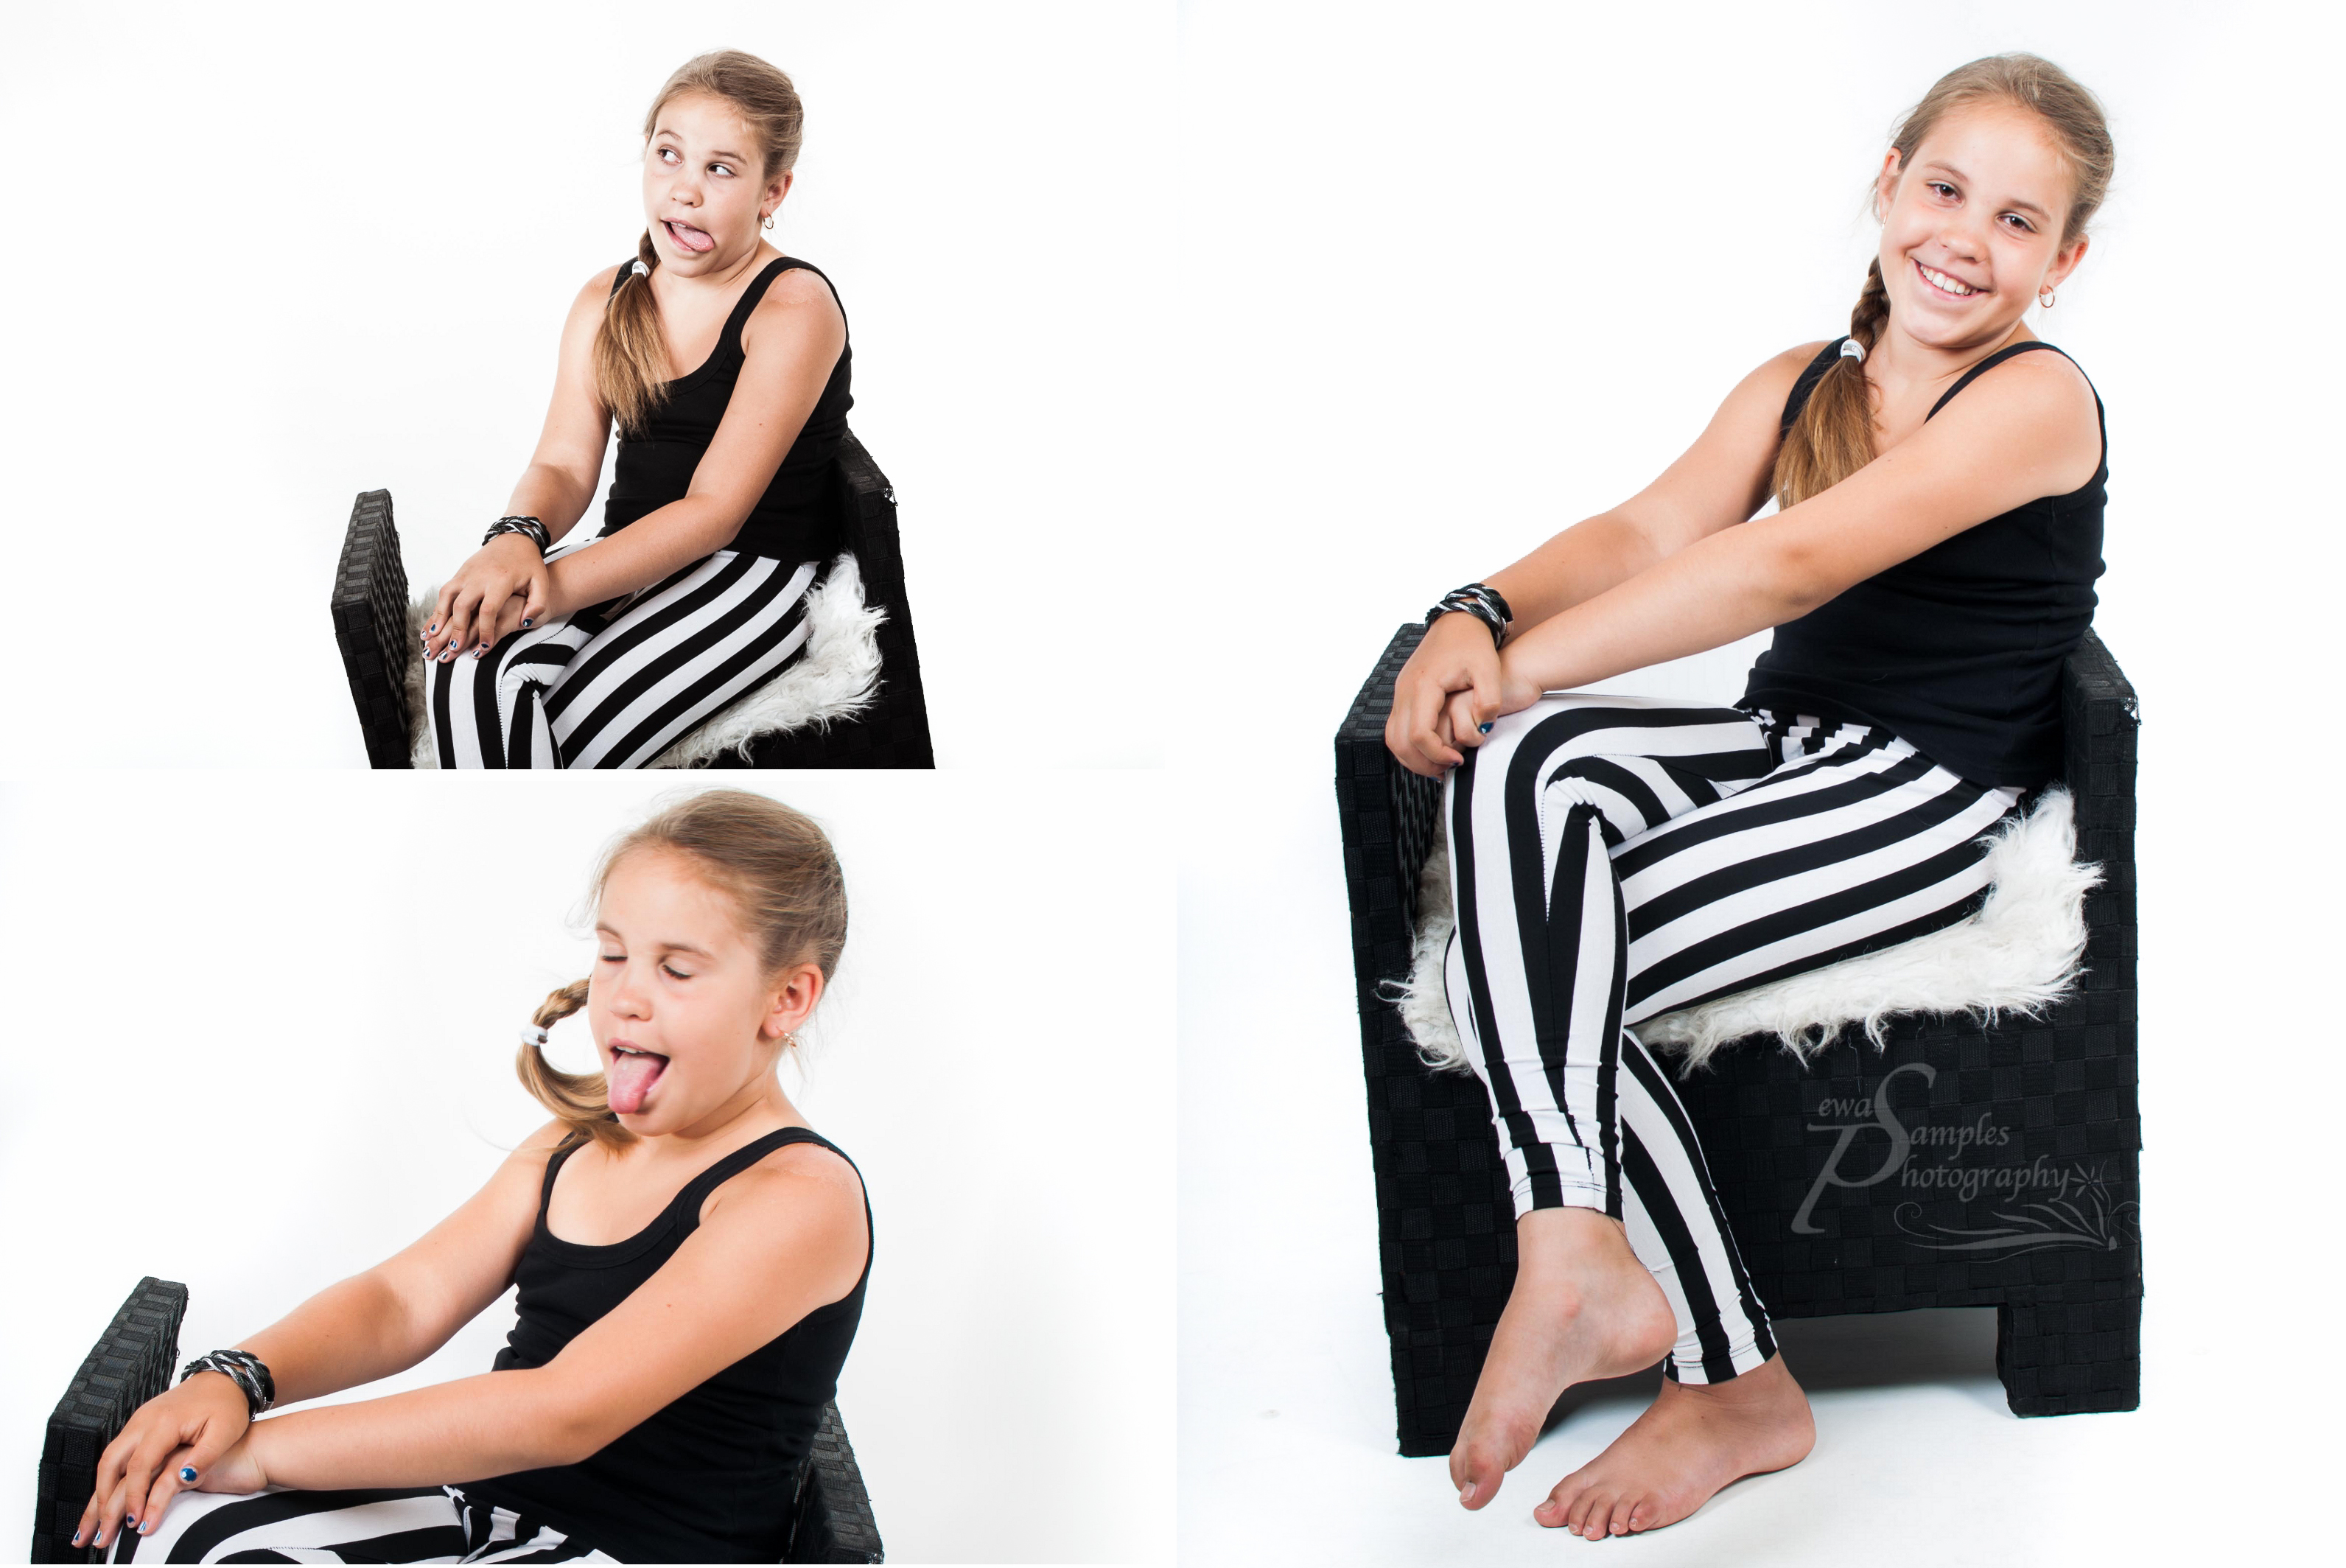 studio-portrait-photography-san-jose-bay-area-ewa-samples-1